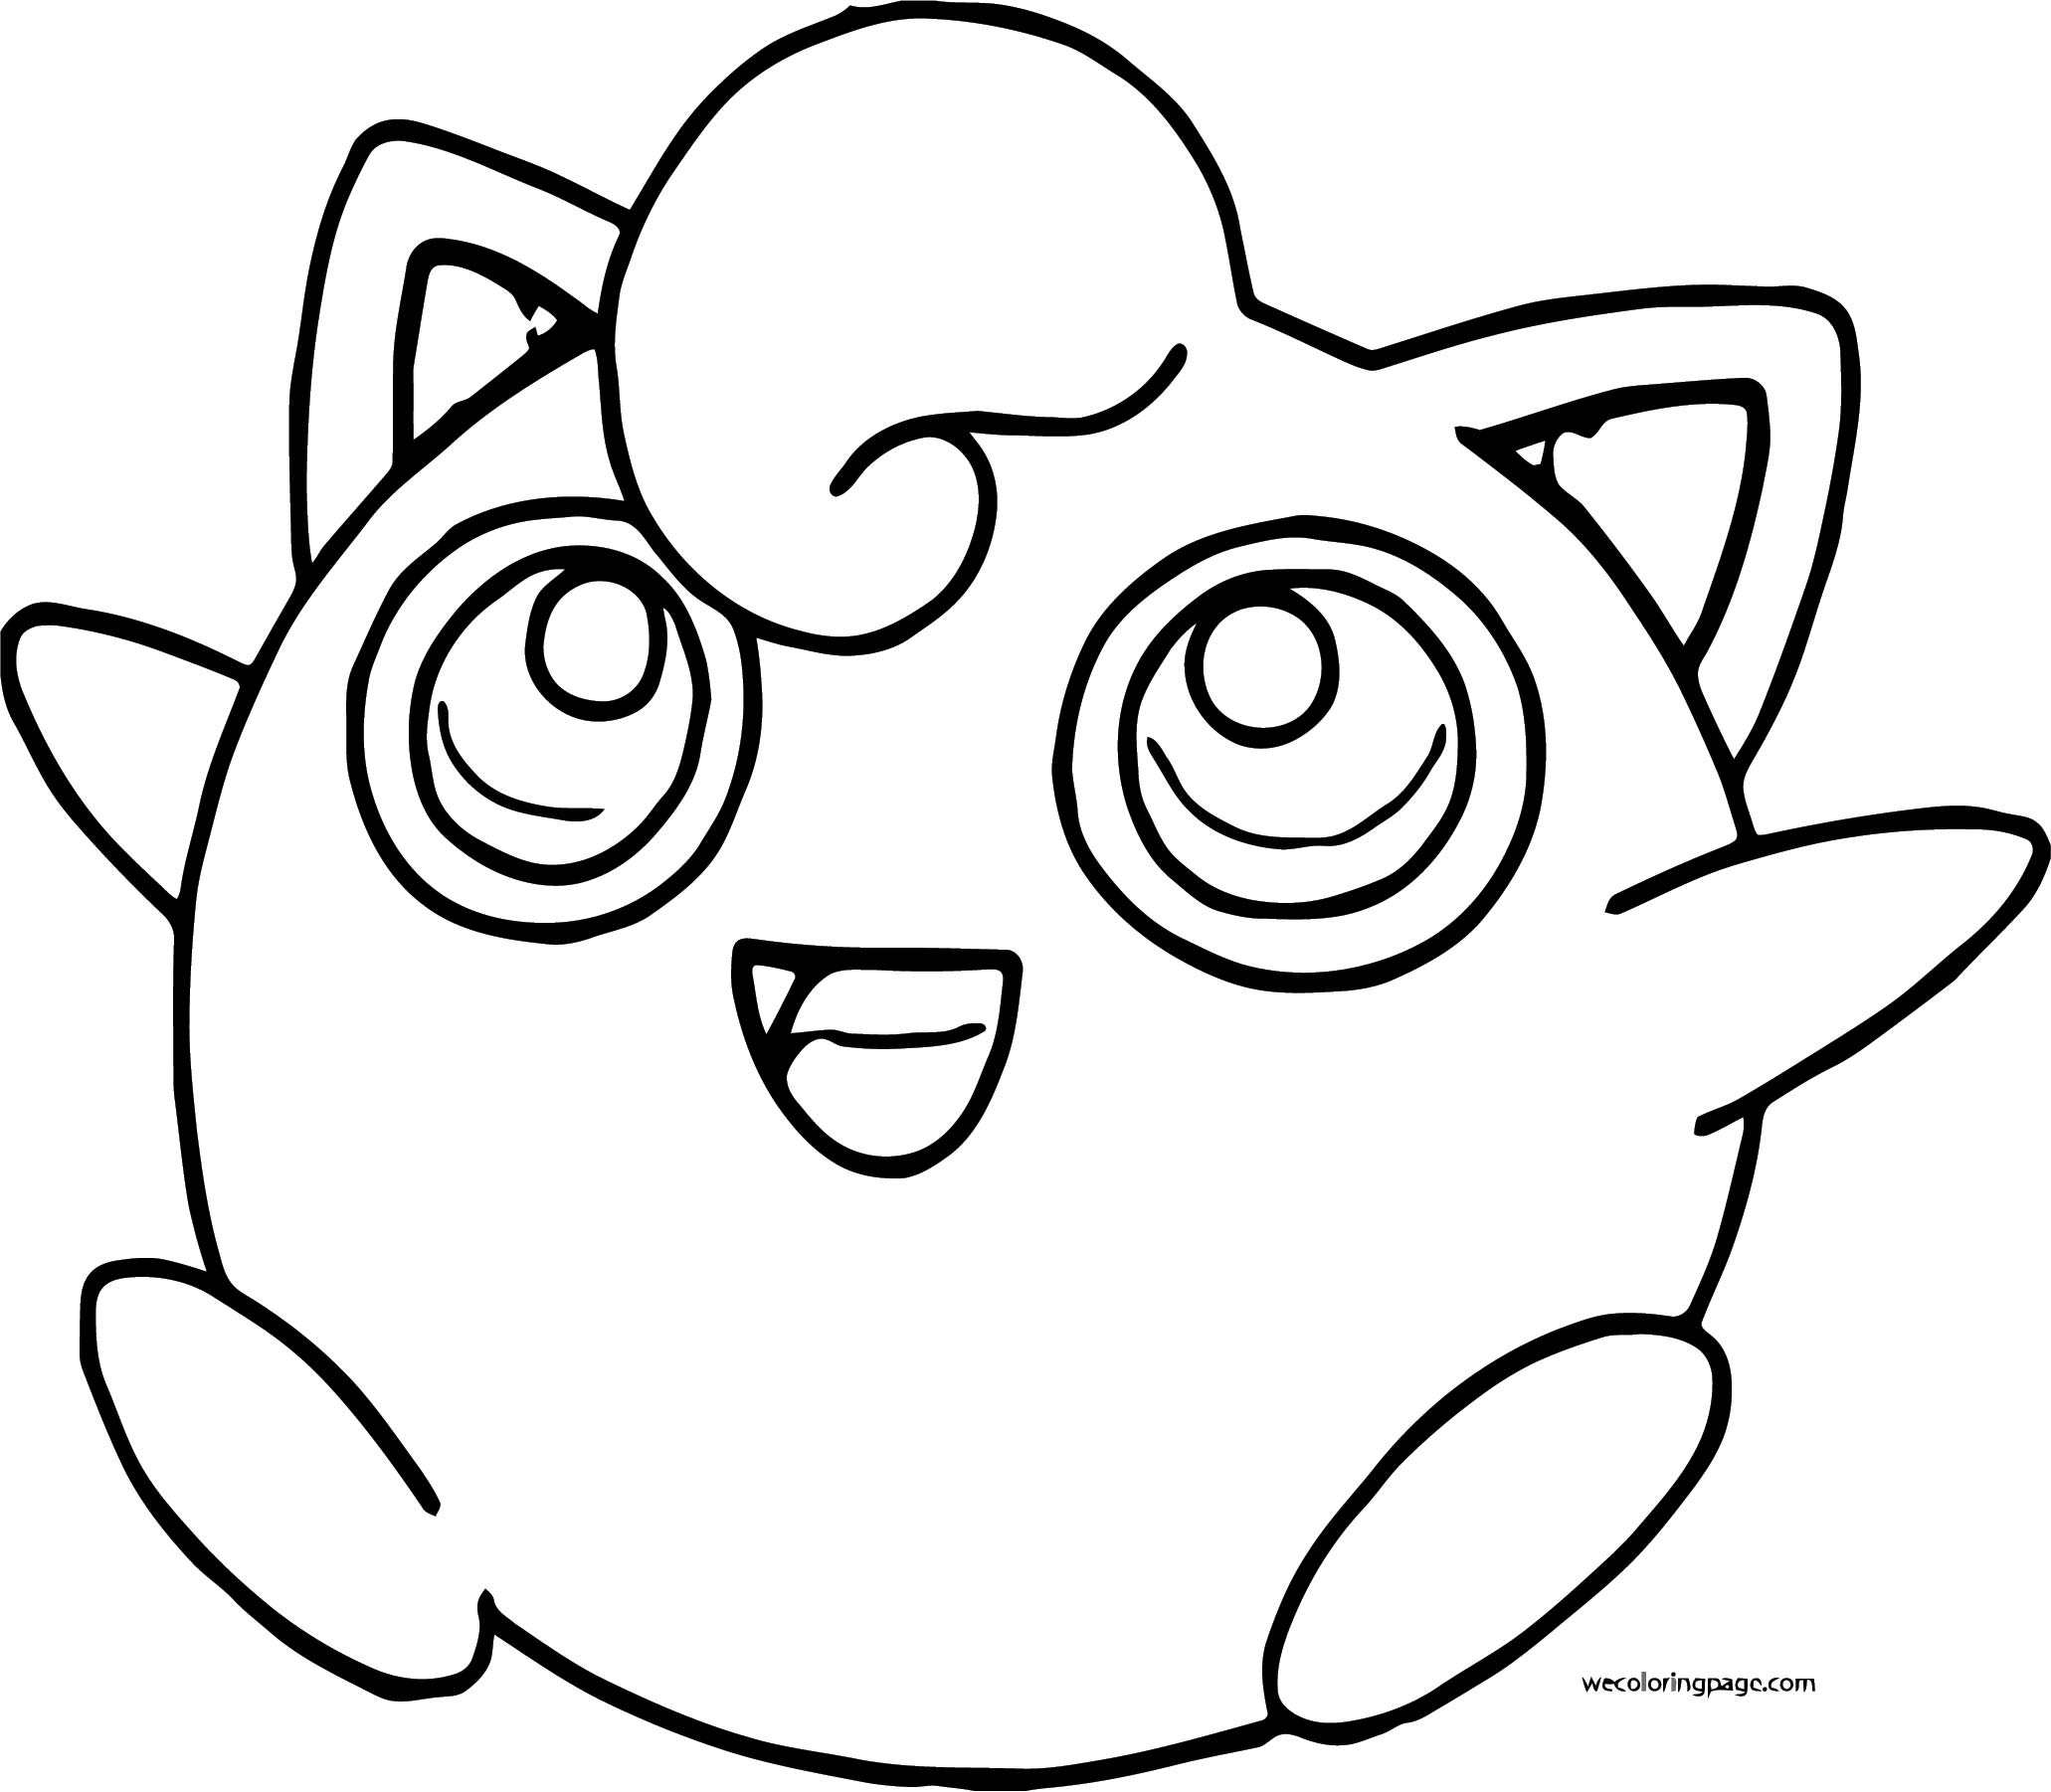 Jigglypuff Coloring Page WeColoringPage 020